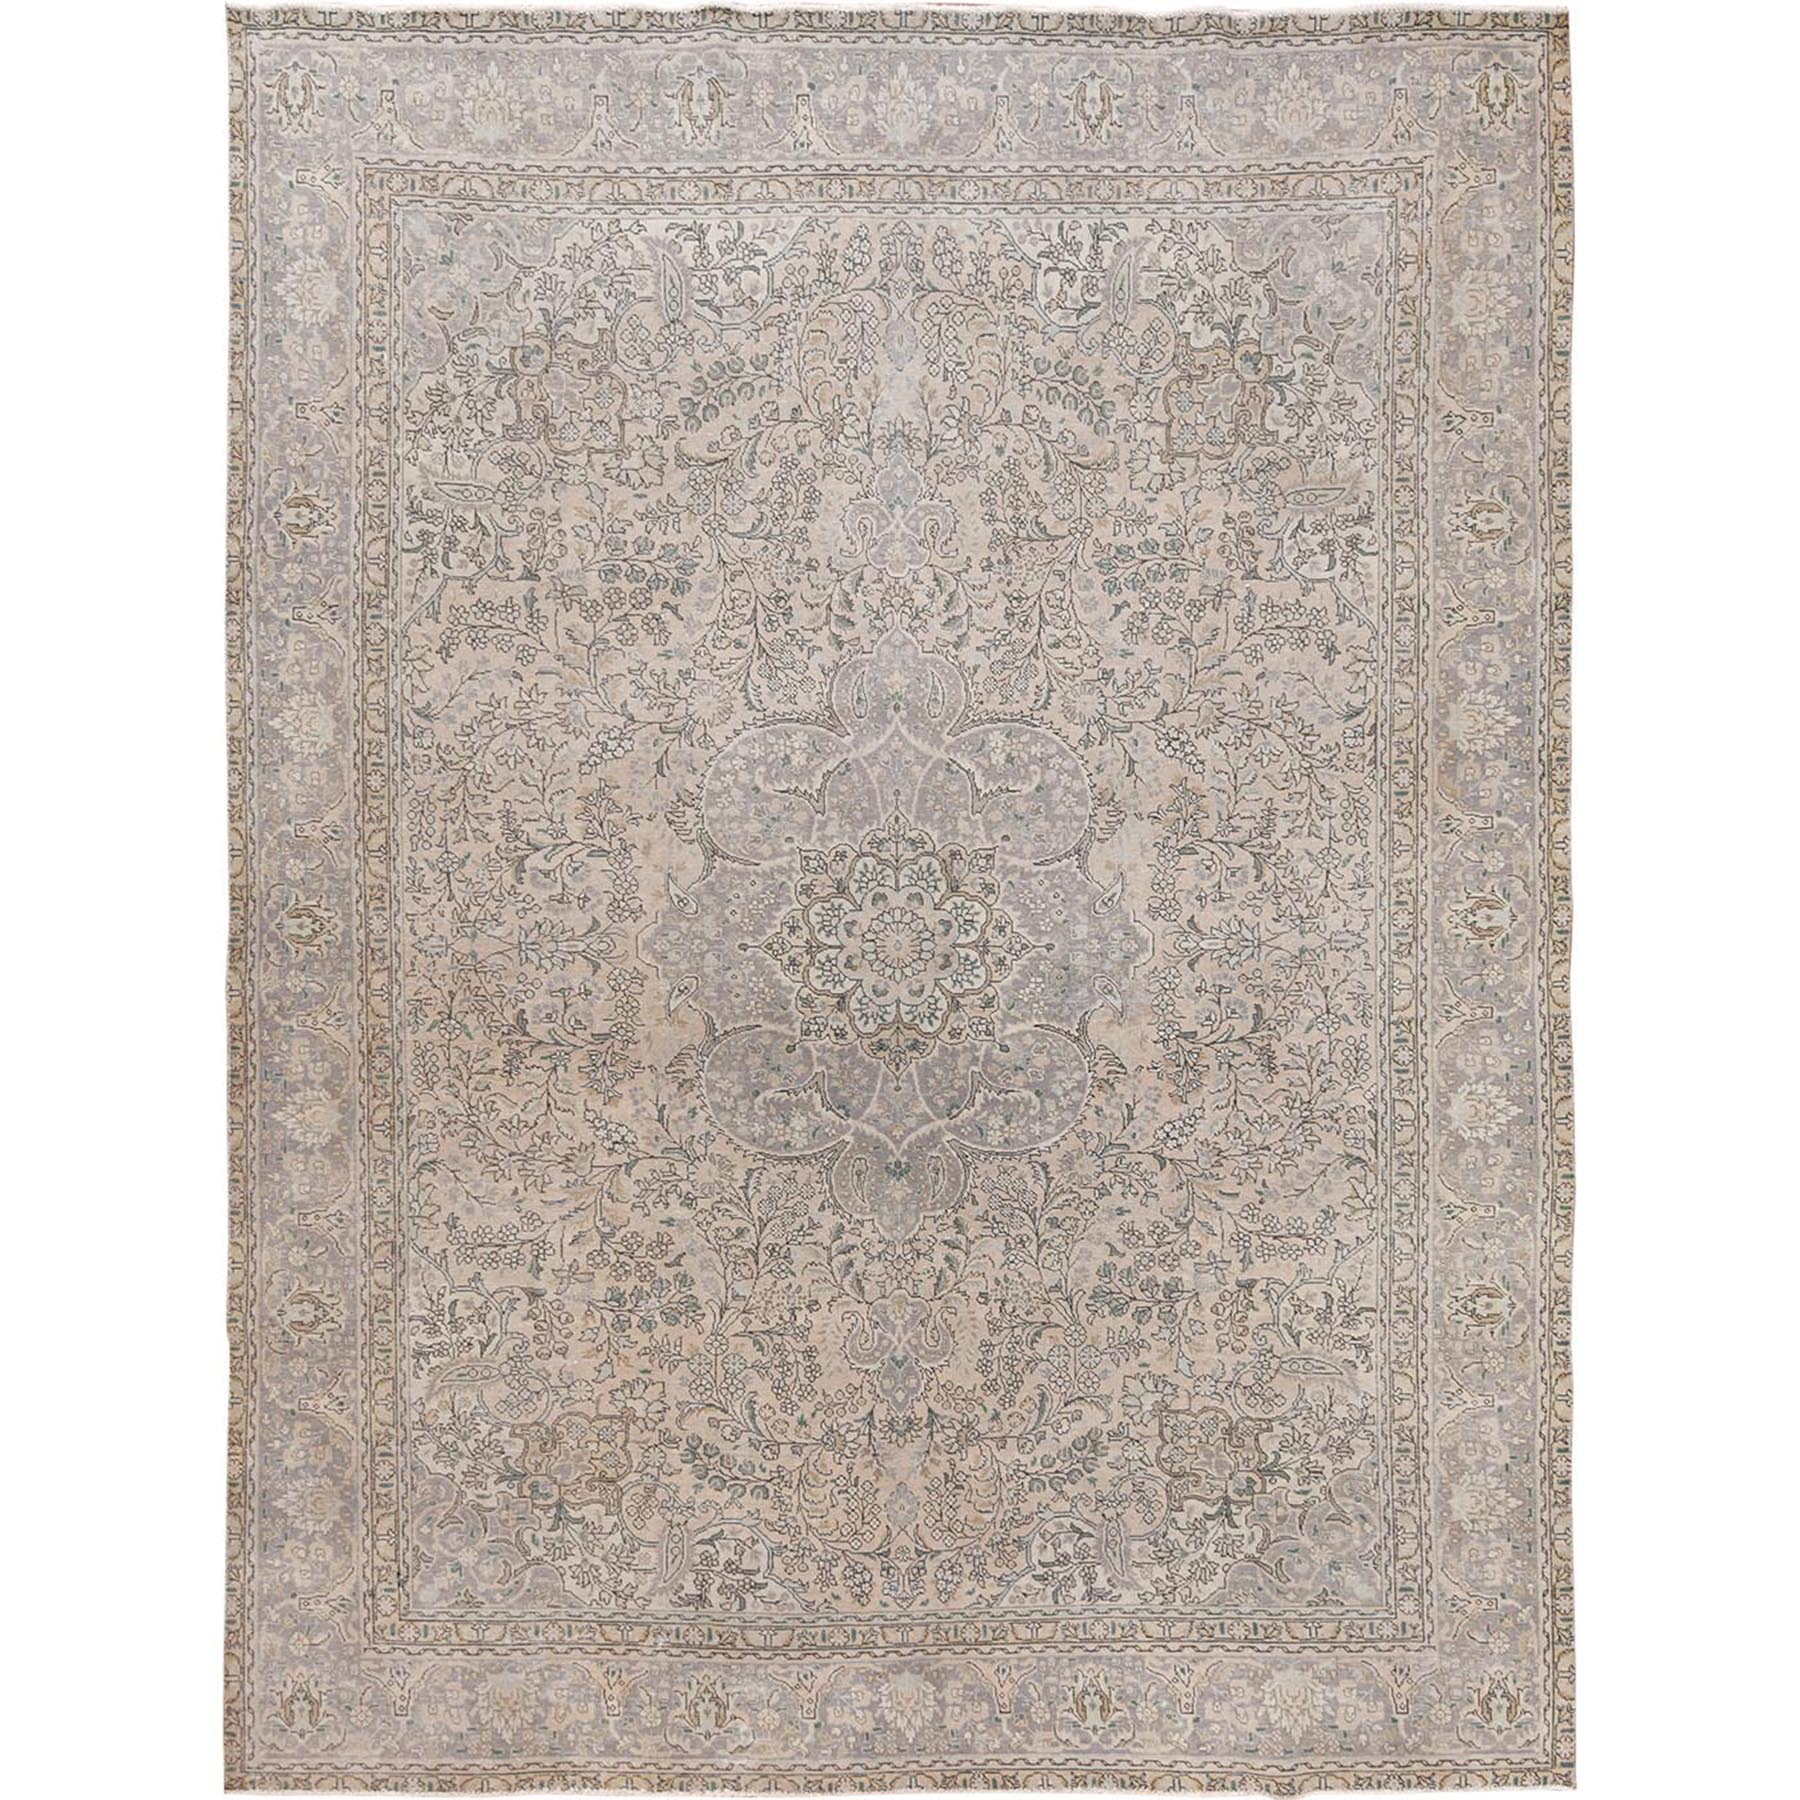 """9'8""""X12'6"""" Tan Color Persian Tabriz With Medallion Design Old Sheared Low Shabby Chic Hand Knotted Natural Wool Clean Oriental Rug moae77c7"""